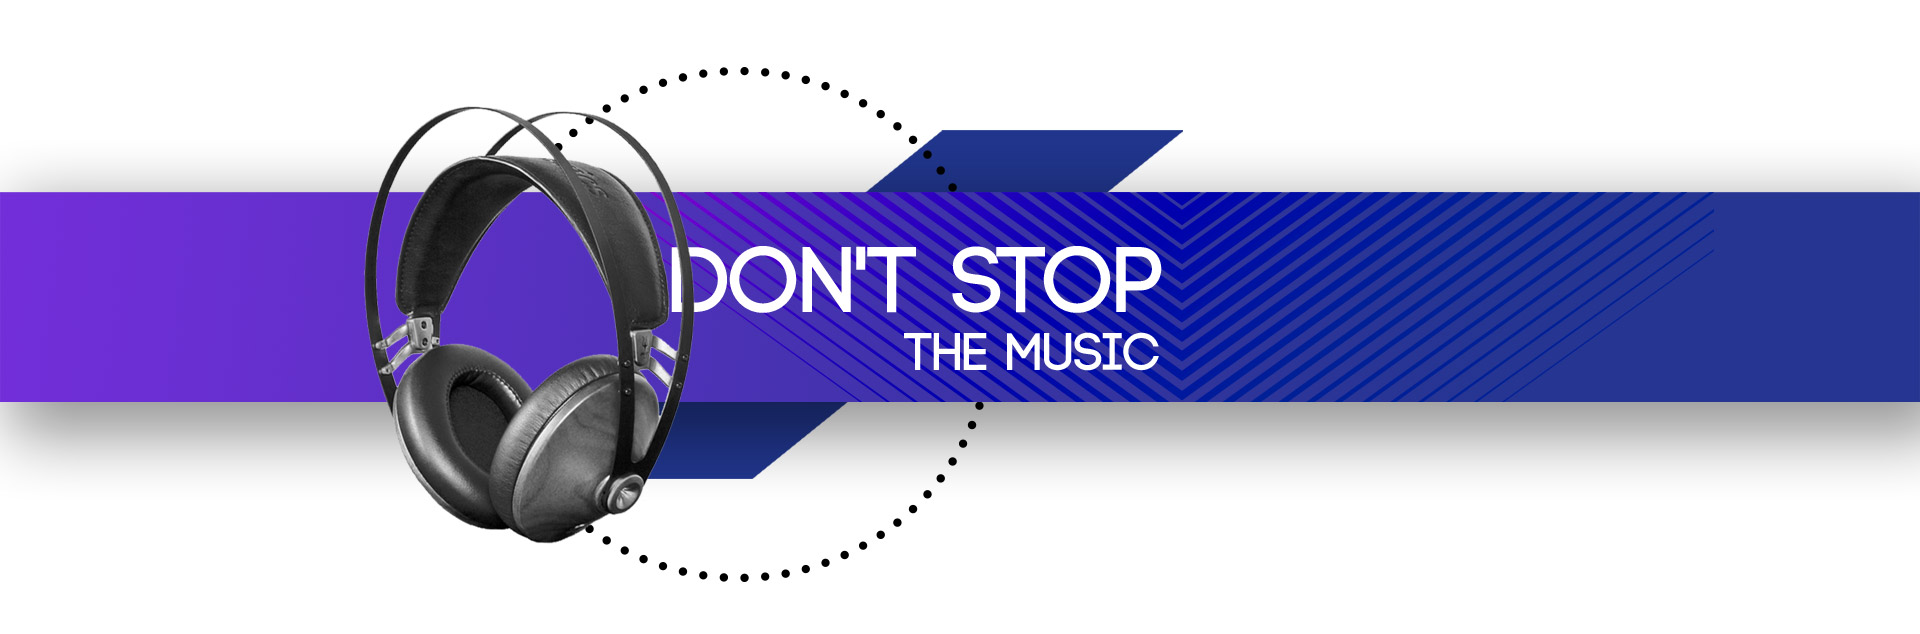 Don't Stop The Music - smaller_02